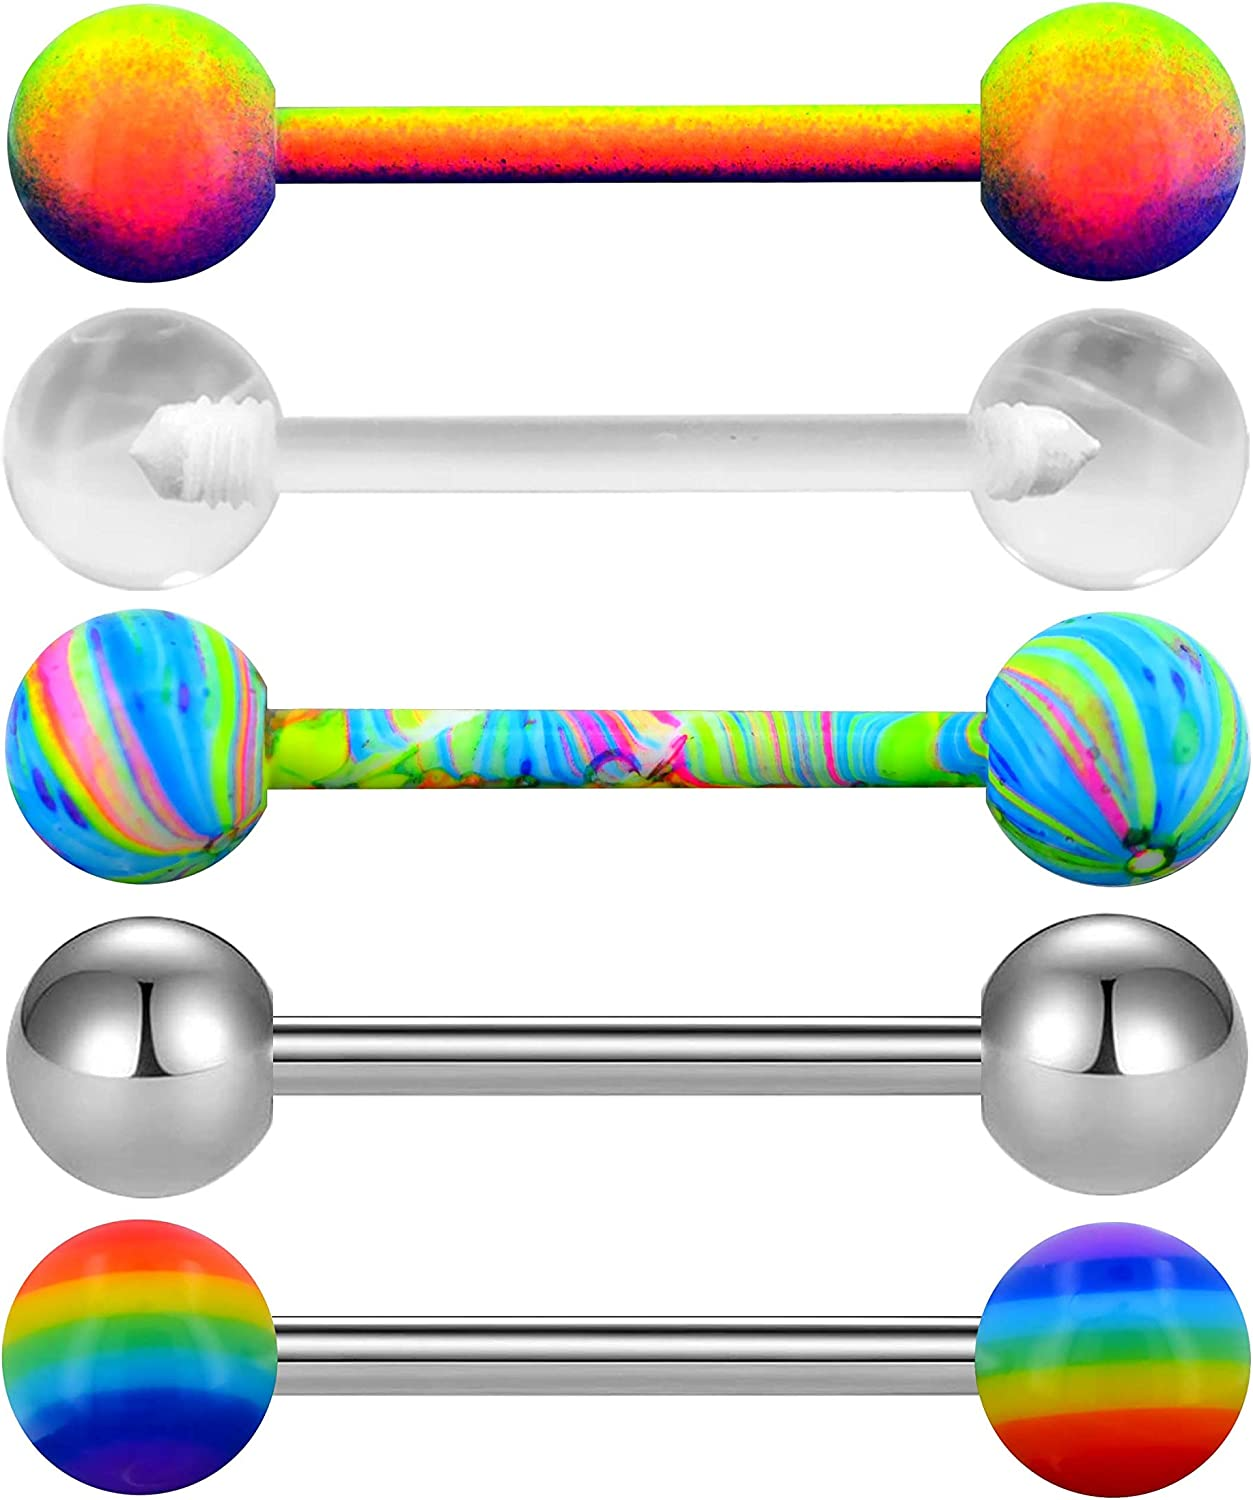 OUFER 5PCS 14G Stainless Steel Tongue Rings Barbell Rainbow Colorful Tongue Bar Piercing